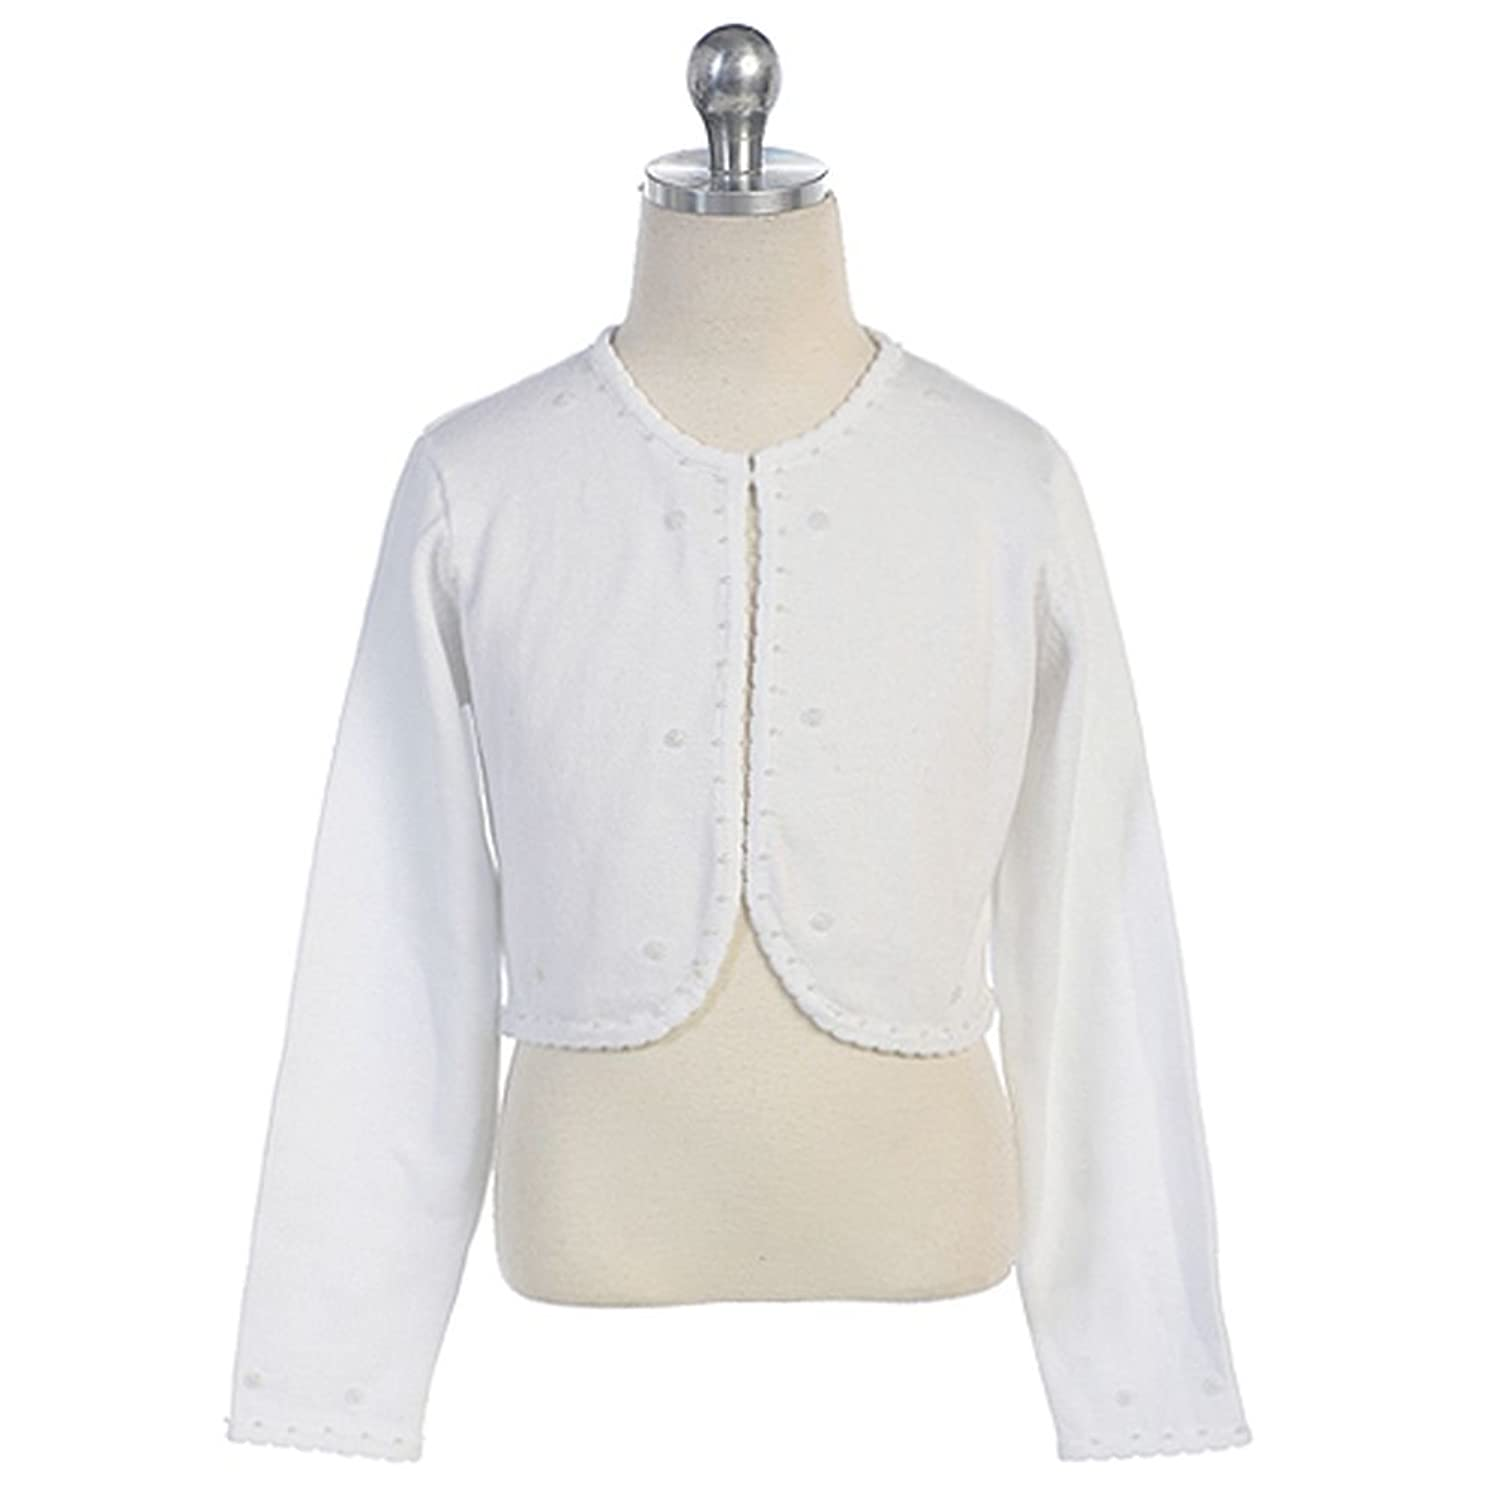 Amazon.com: Chic Baby Toddler Girls White Beaded Bolero Shrug ...